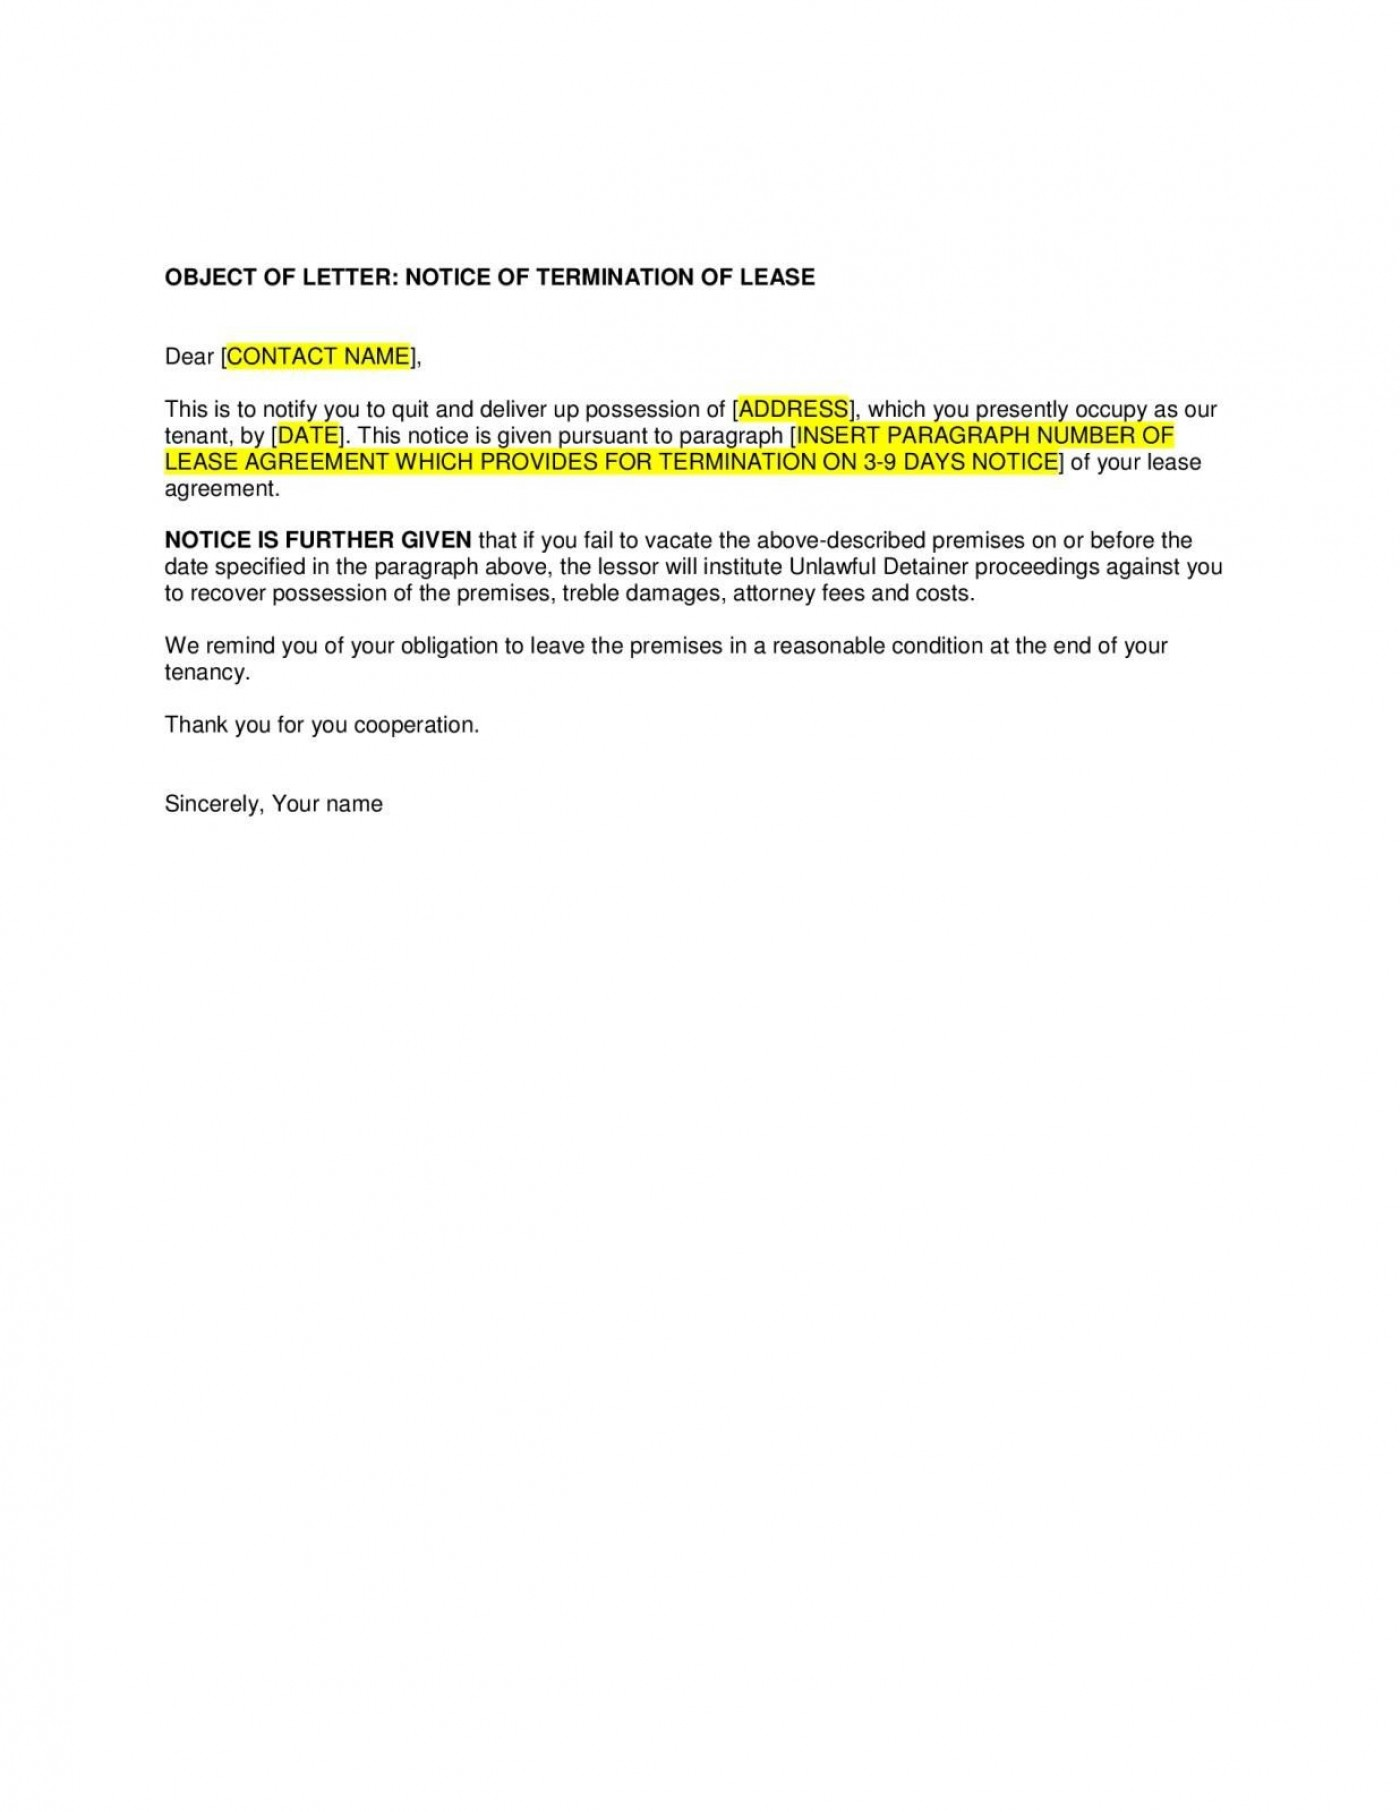 004 Unique Template For Terminating A Lease Agreement Inspiration  Rental Sample Letter1400